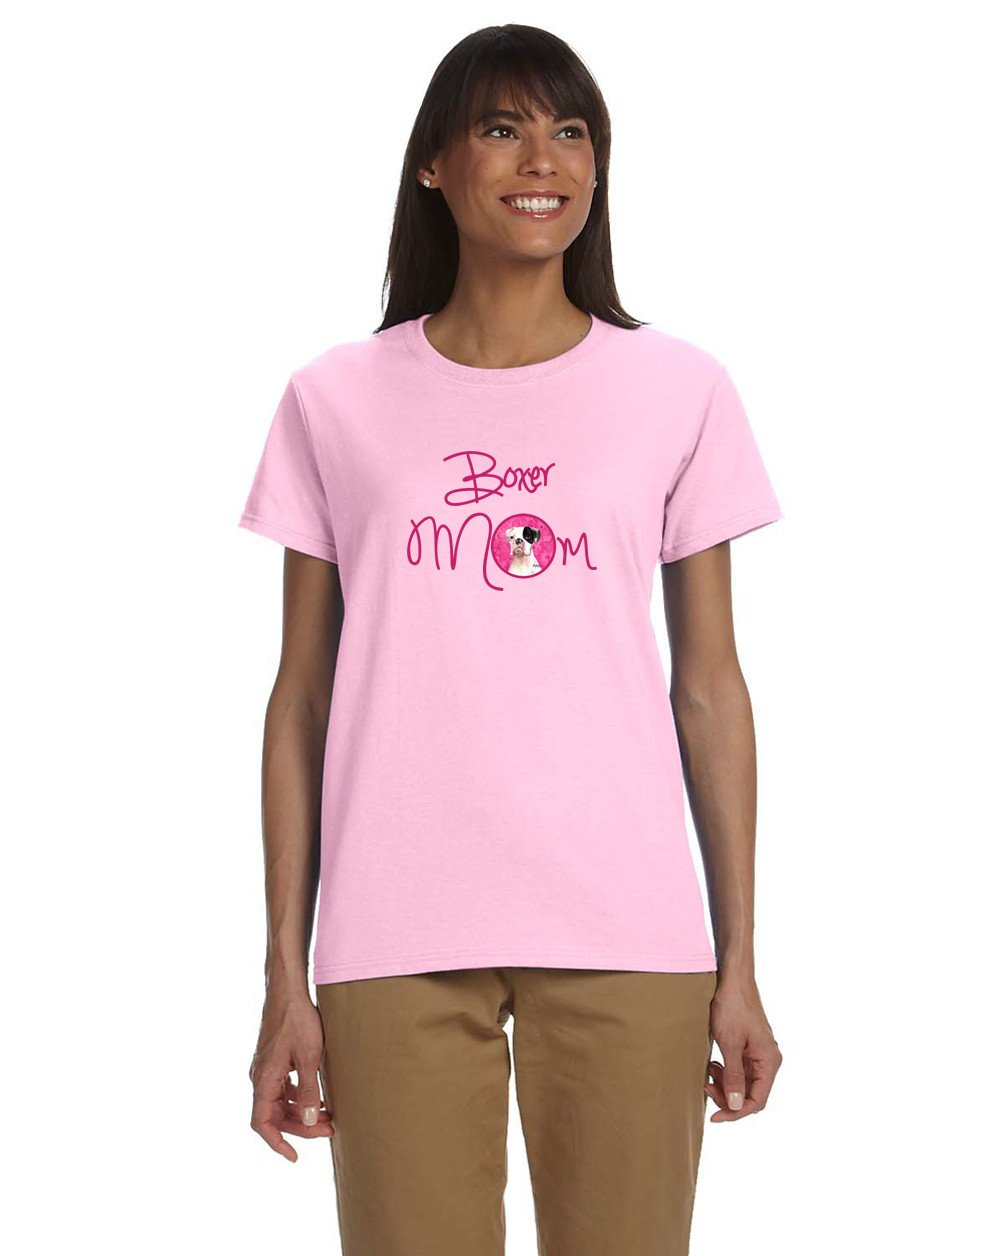 Pink Cooper the Boxer Mom T-shirt Ladies Cut Short Sleeve Medium RDR3019PK-978-M by Caroline's Treasures